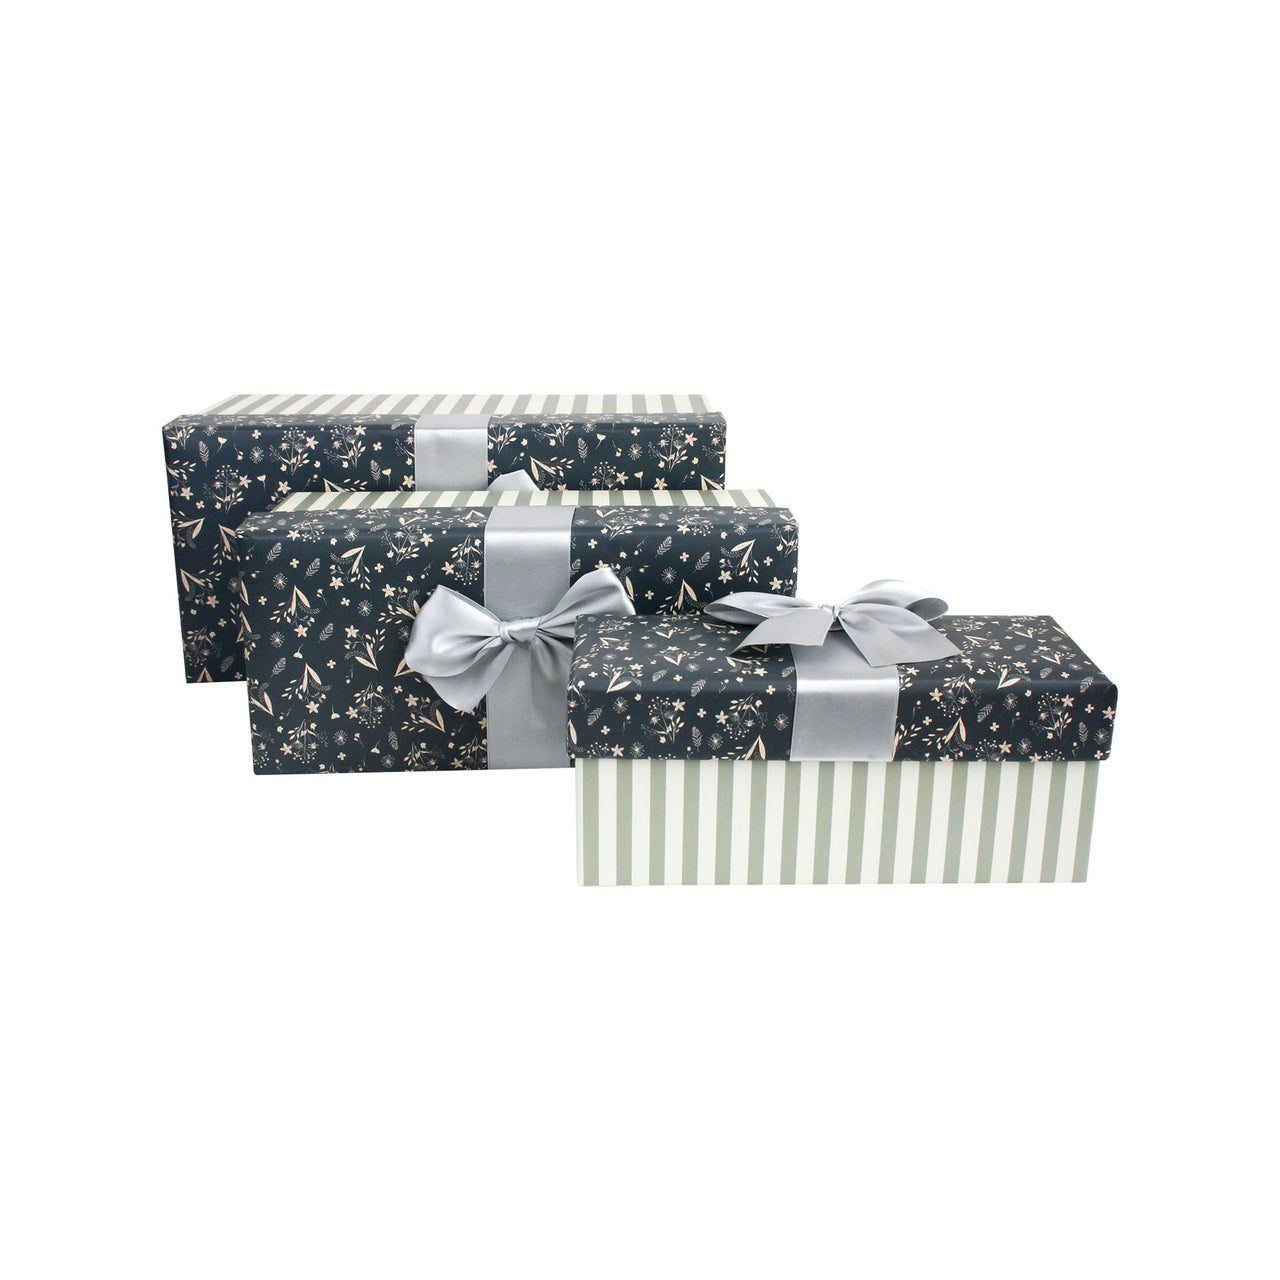 Grey Silver Floral Gift Box - Set Of 3